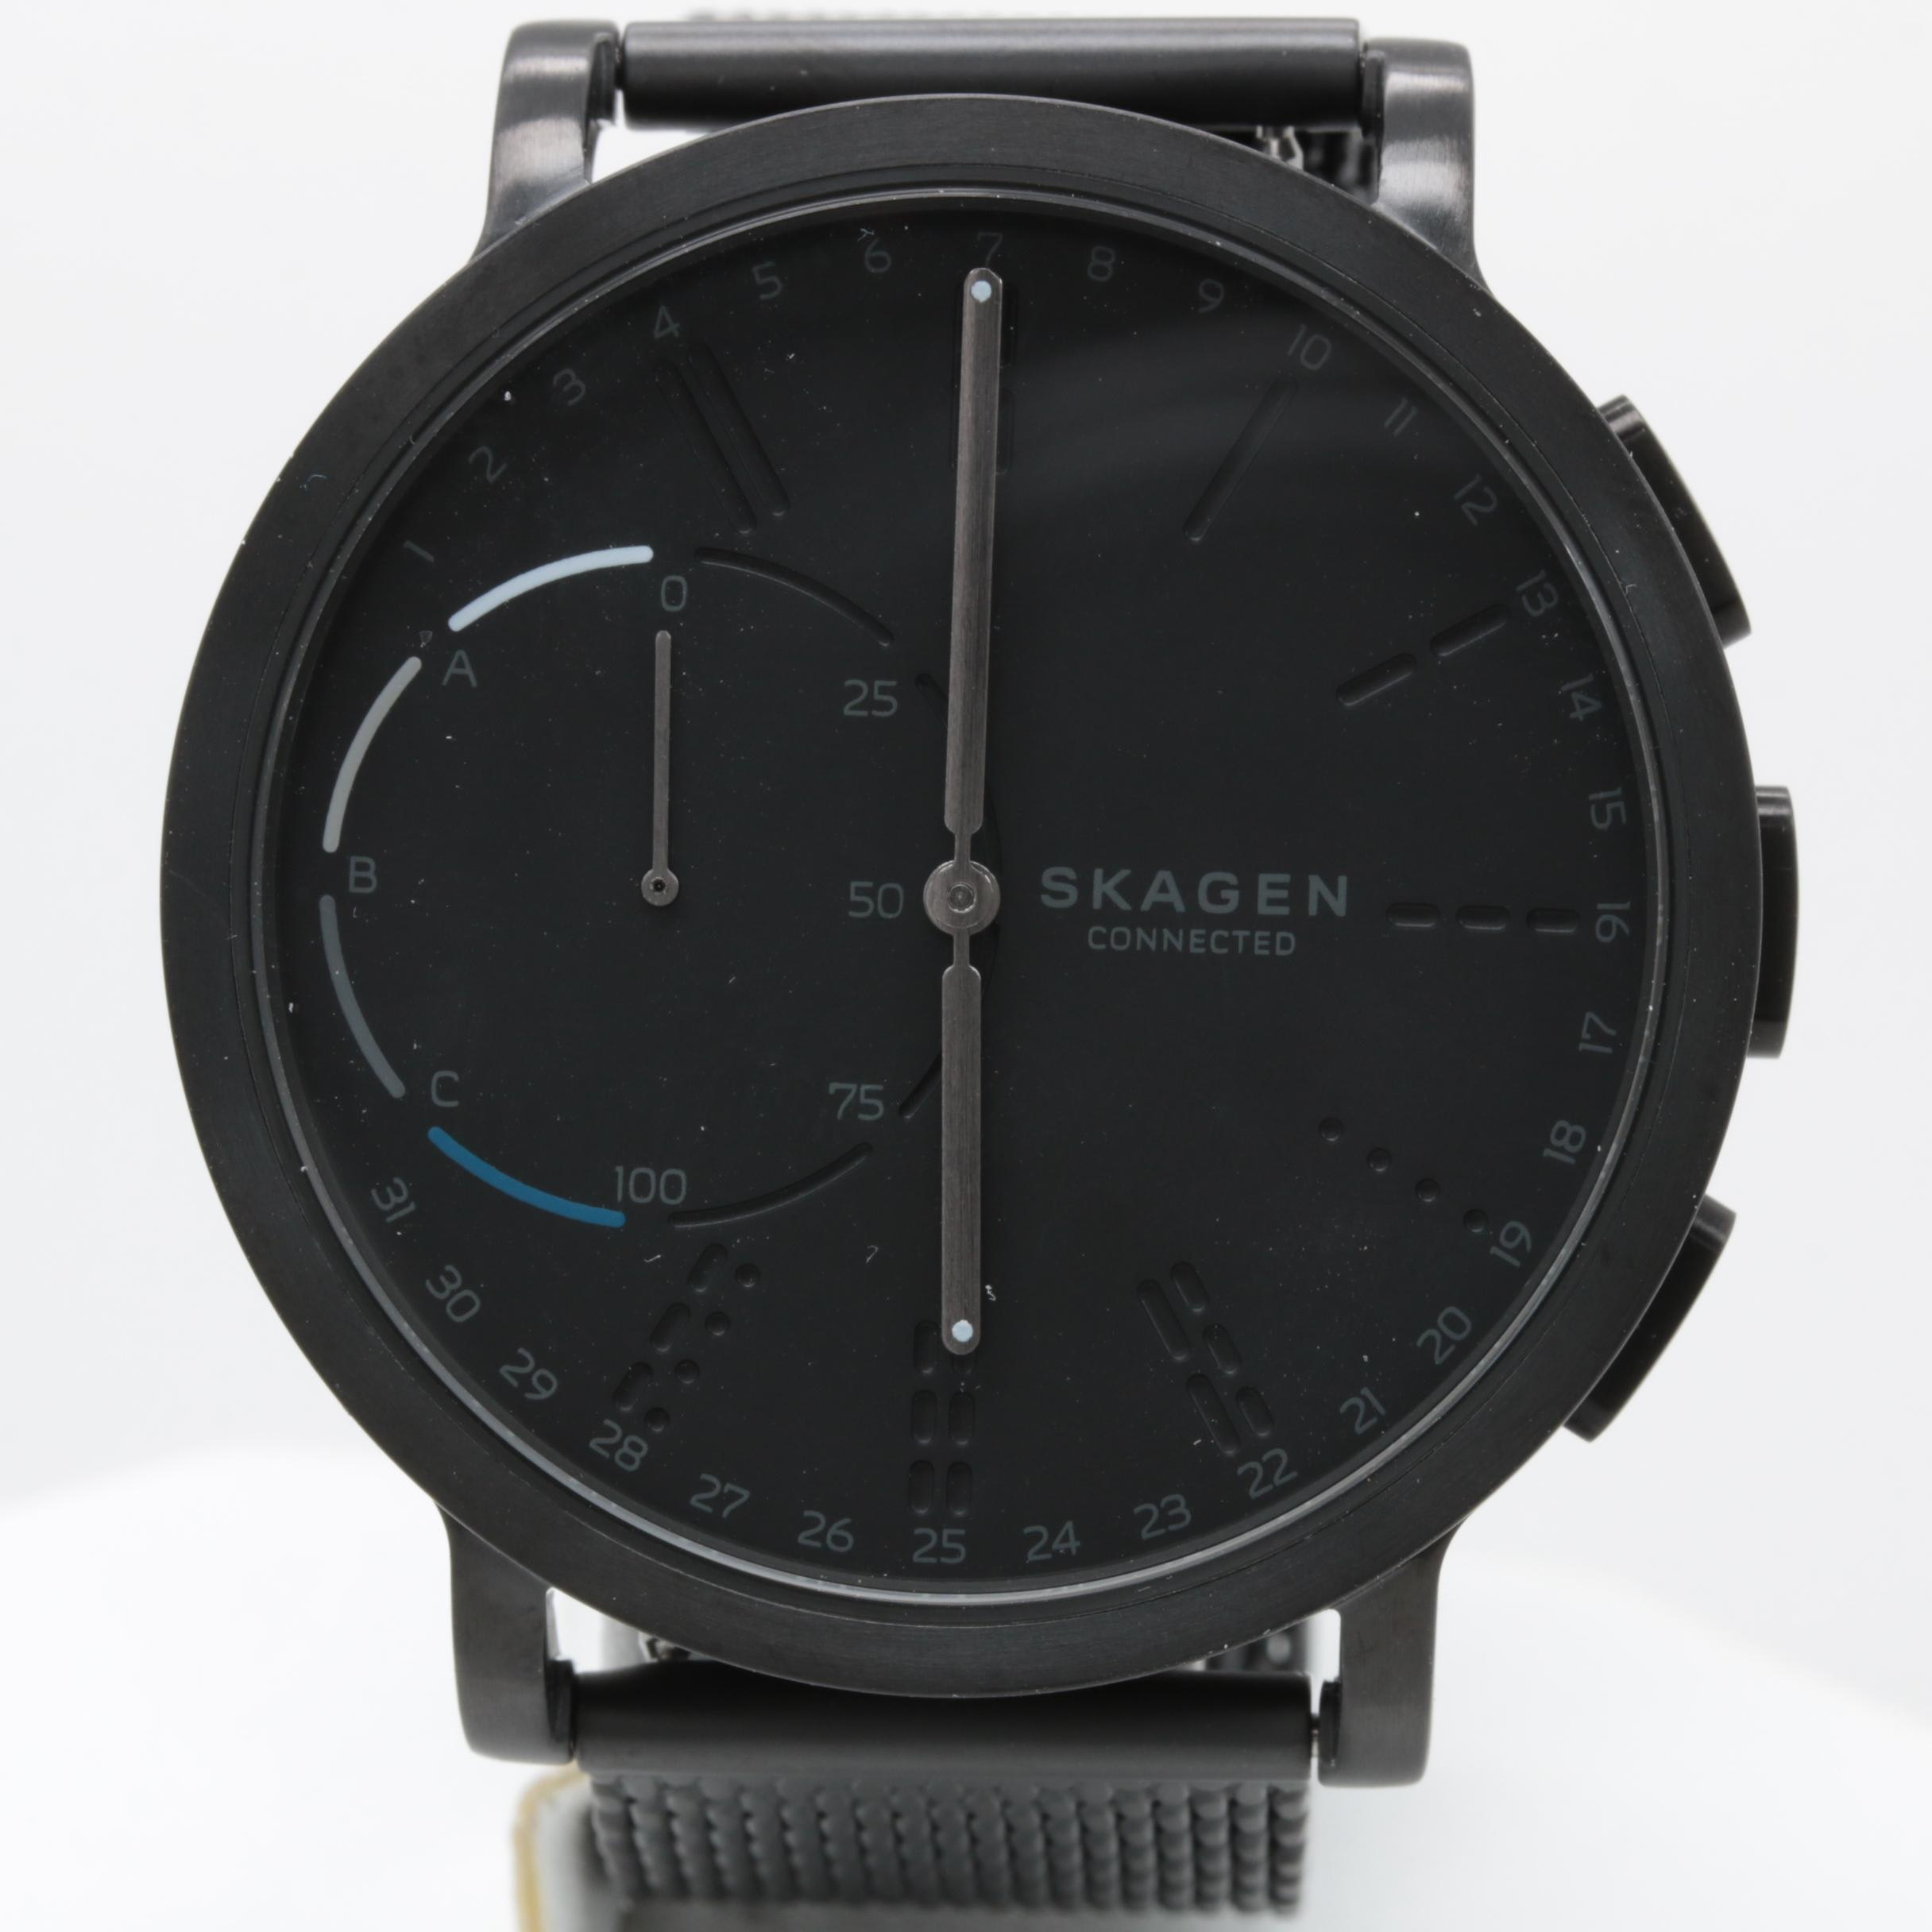 Skagen Black Stainless Steel Hybrid Smartwatch